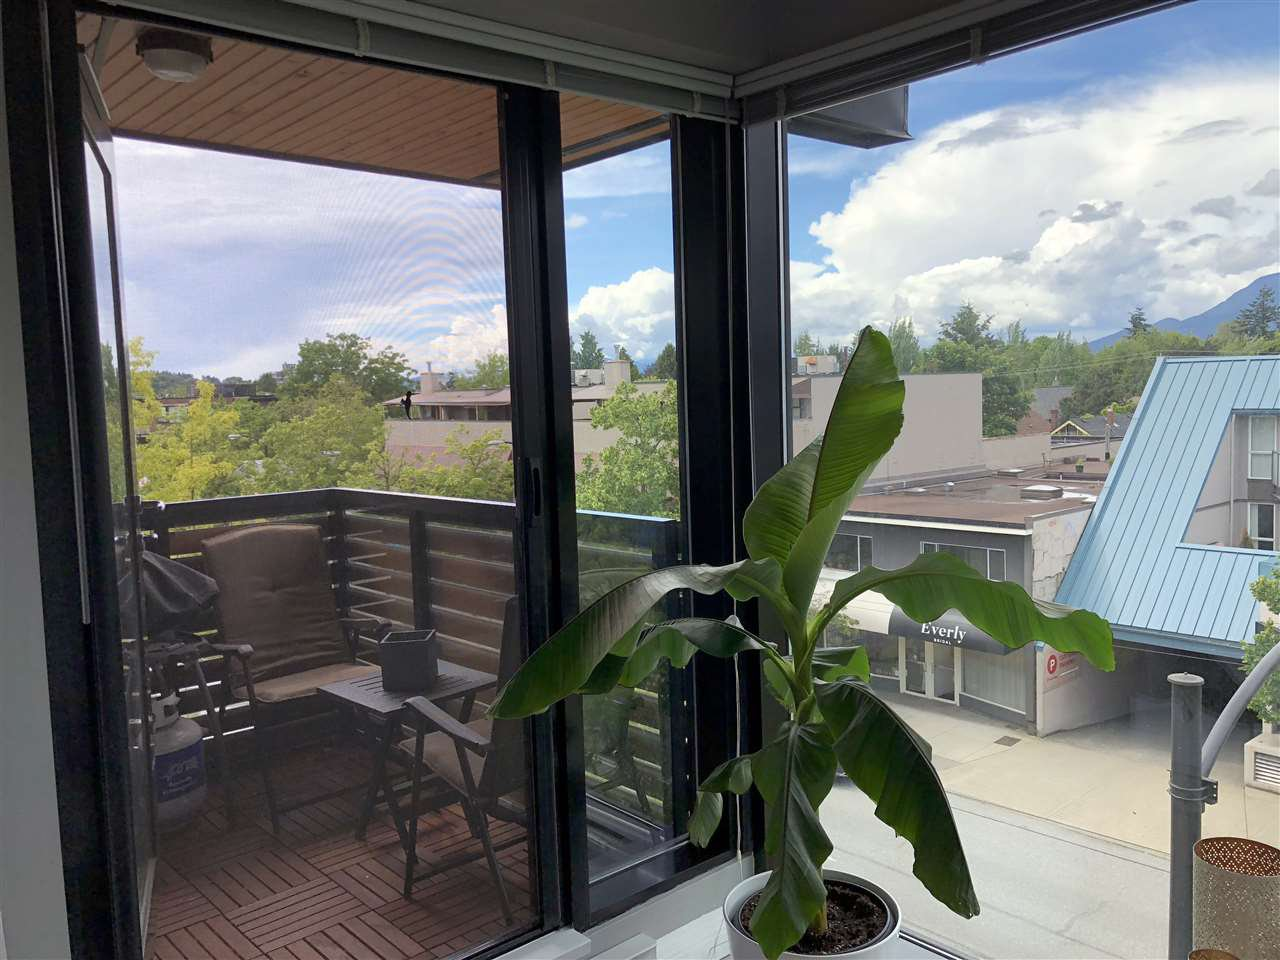 Photo 8: Photos: 404 2525 BLENHEIM Street in Vancouver: Kitsilano Condo for sale (Vancouver West)  : MLS®# R2278188